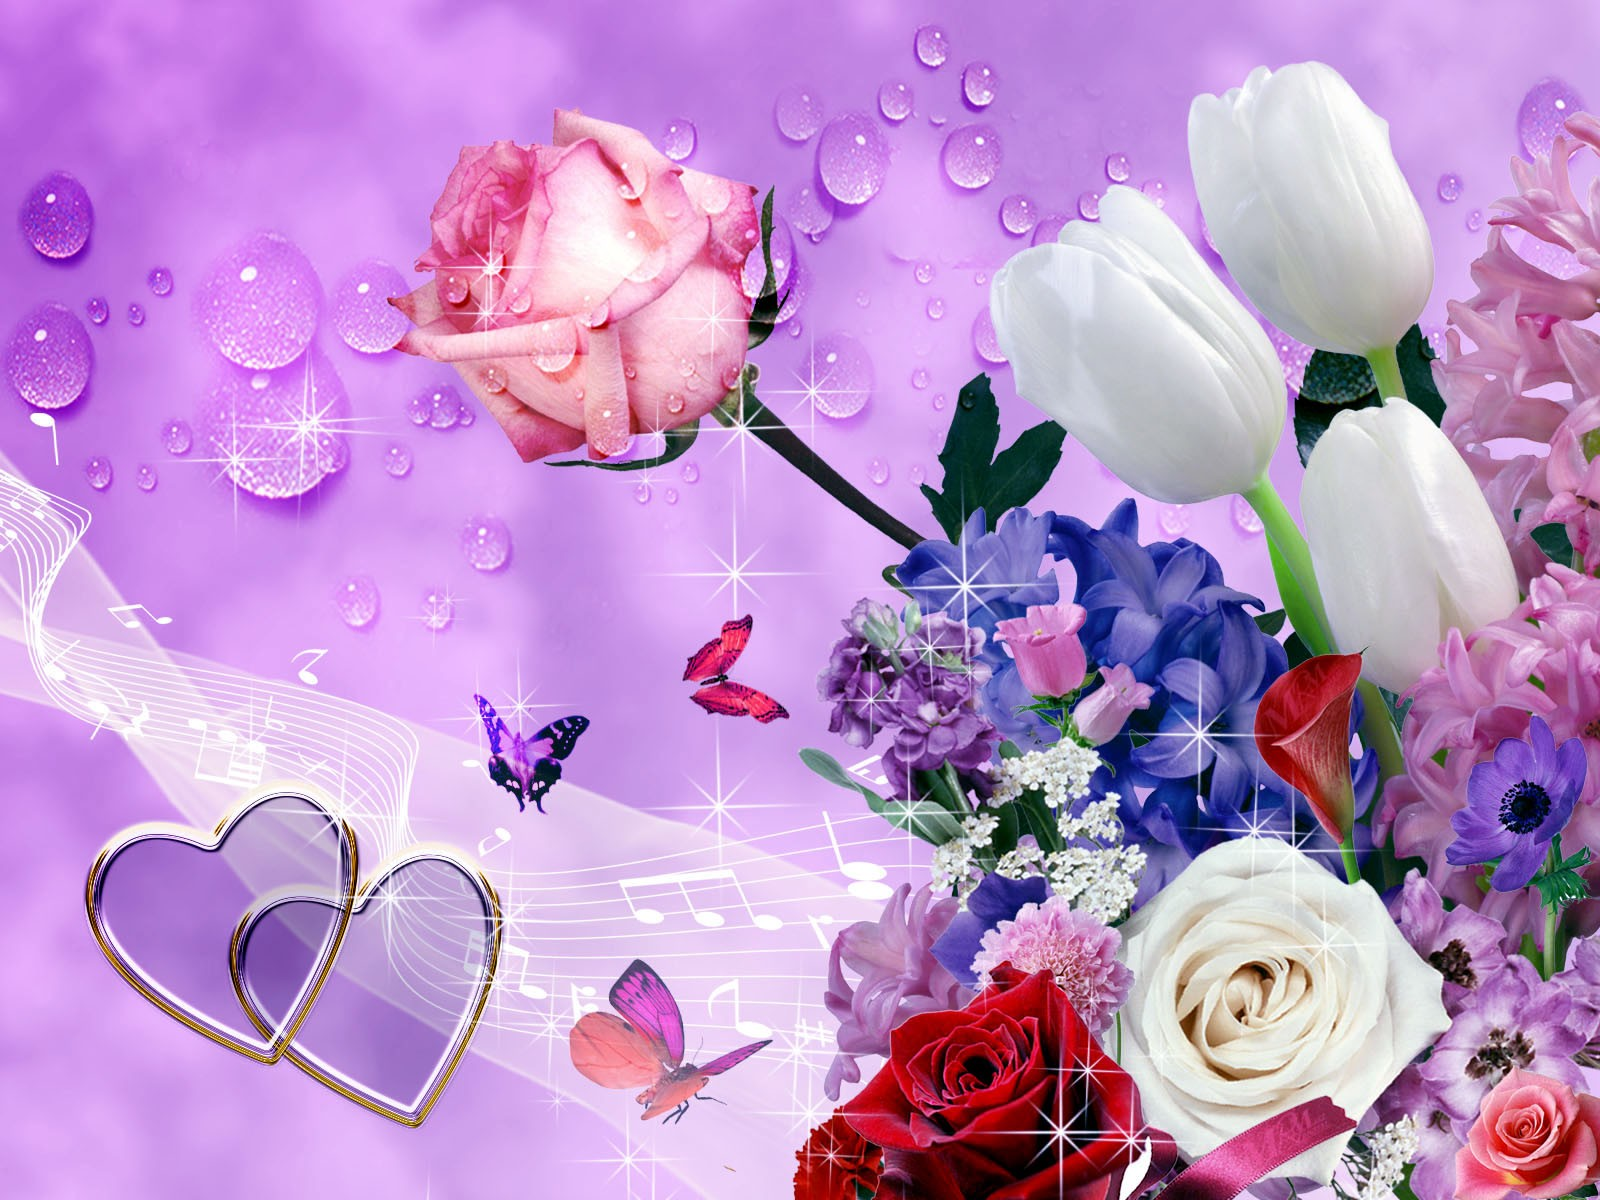 Mastipak wallpapers for Latest love images